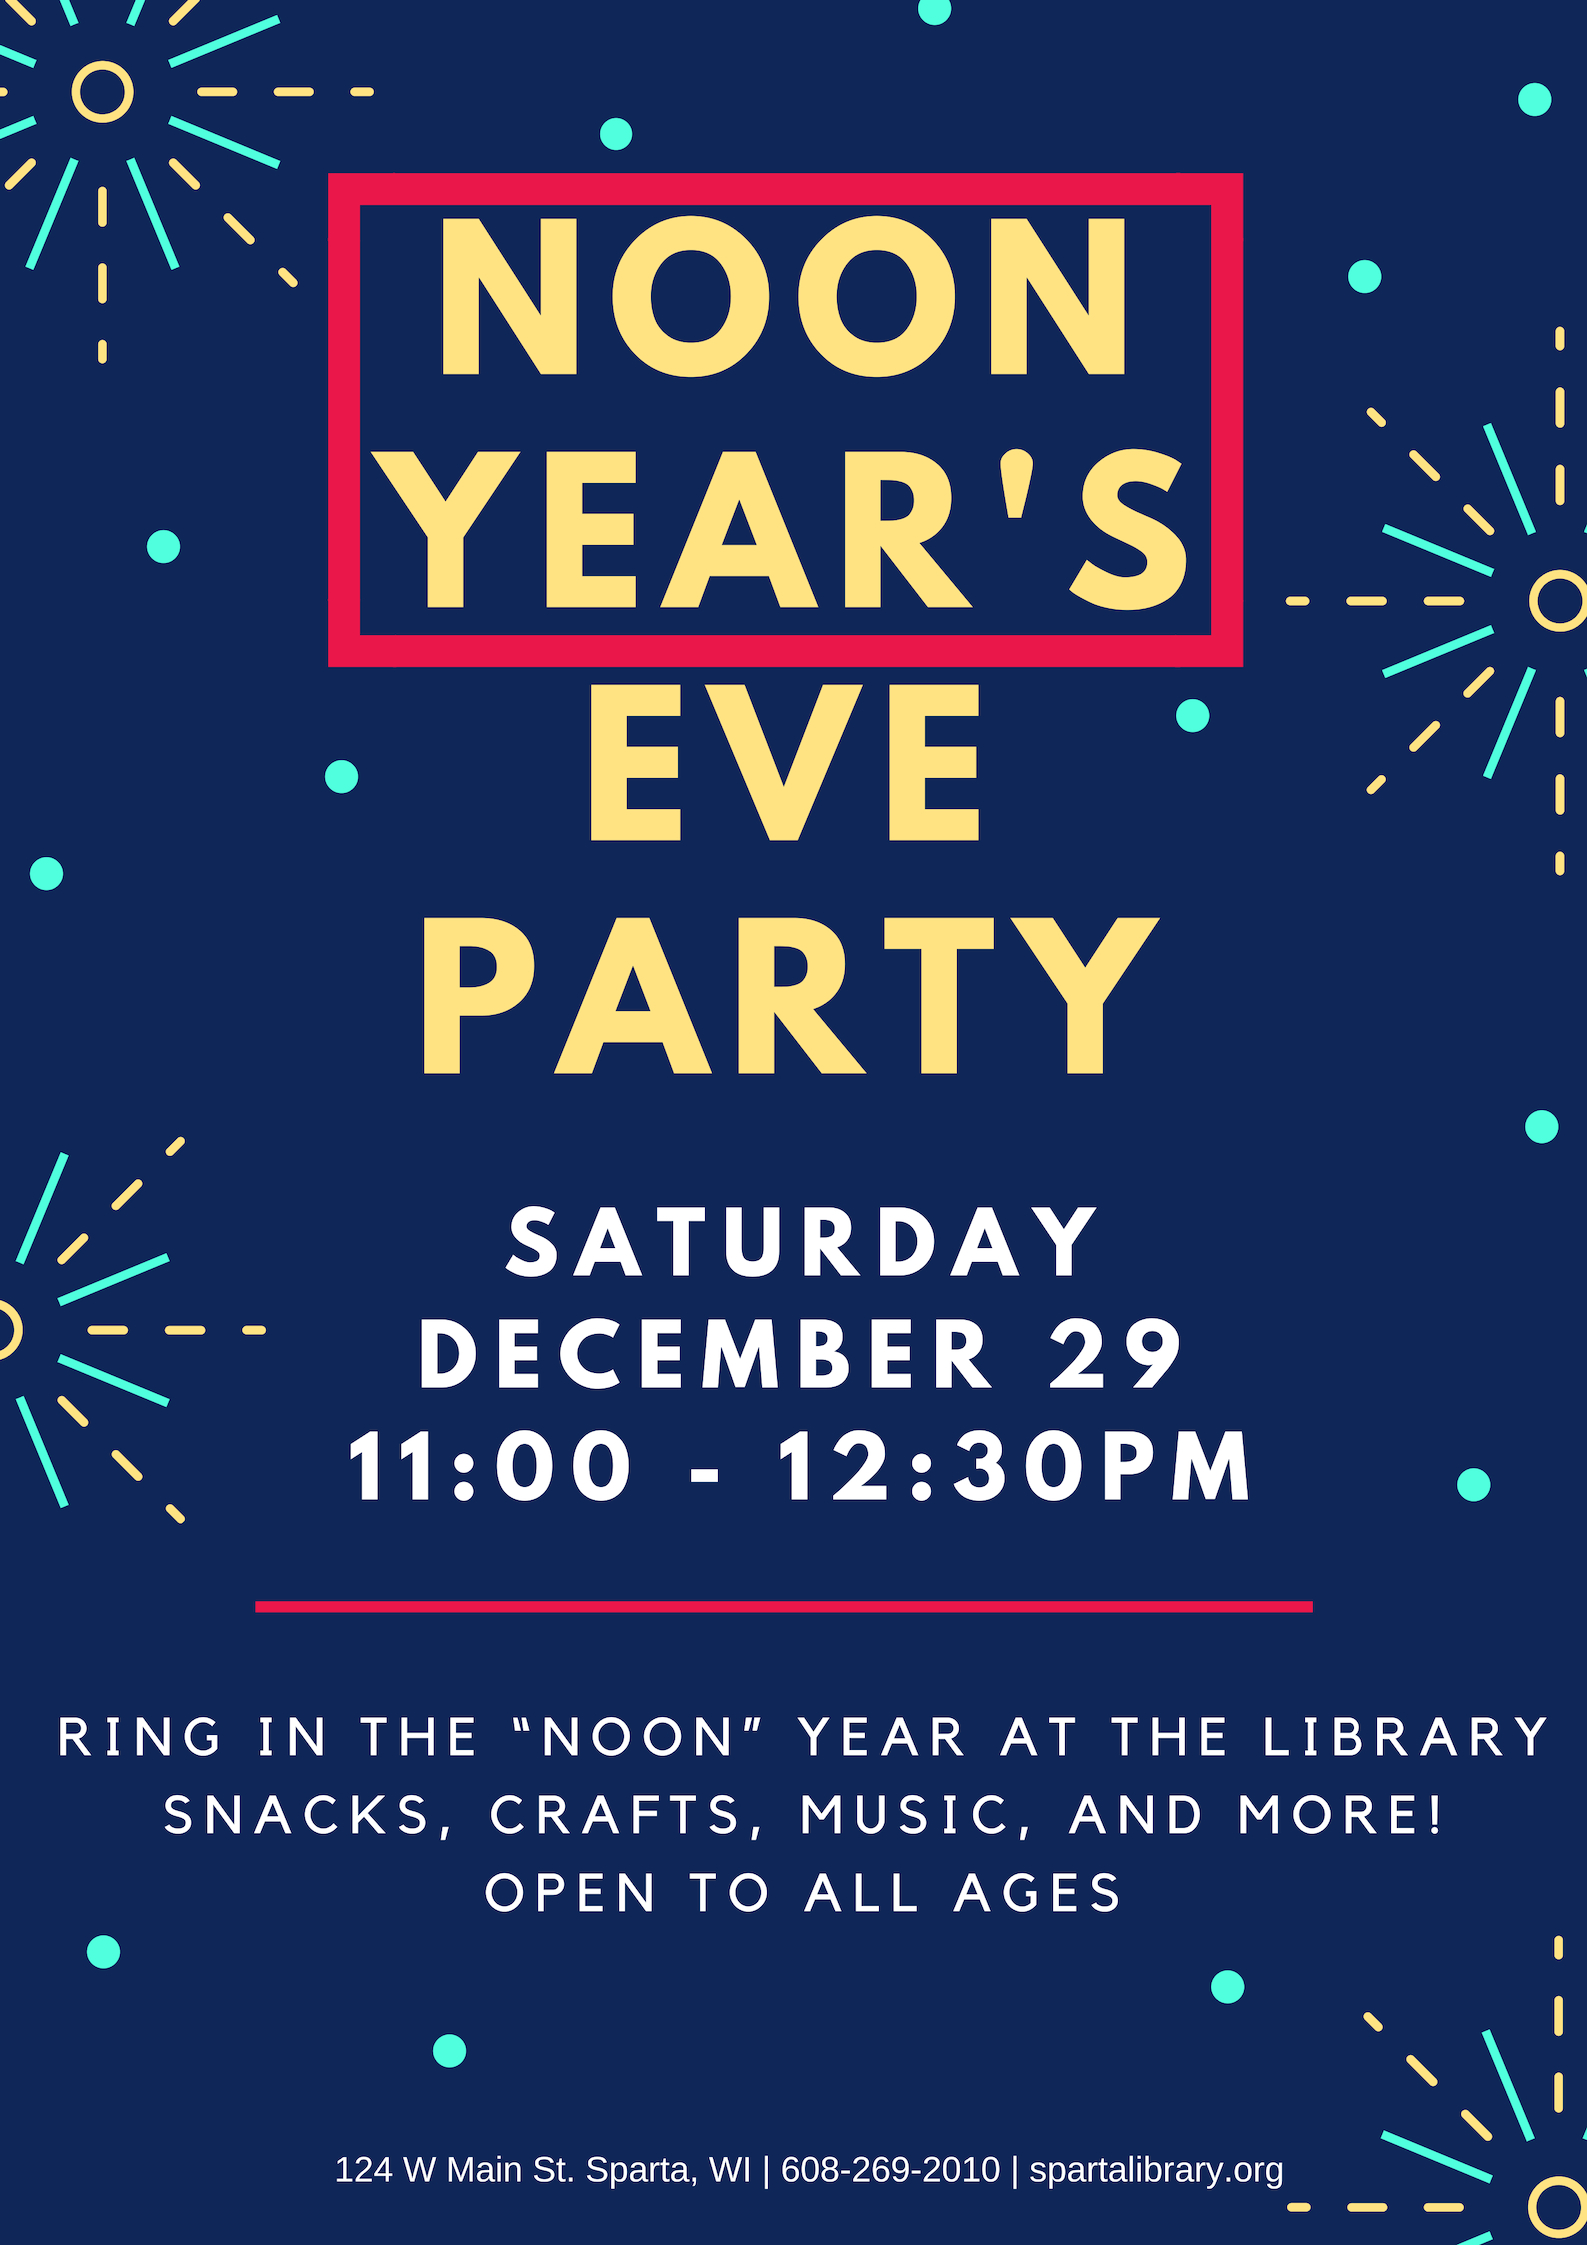 Noon Year's Ever Party @ Sparta Free Library | Sparta | Wisconsin | United States